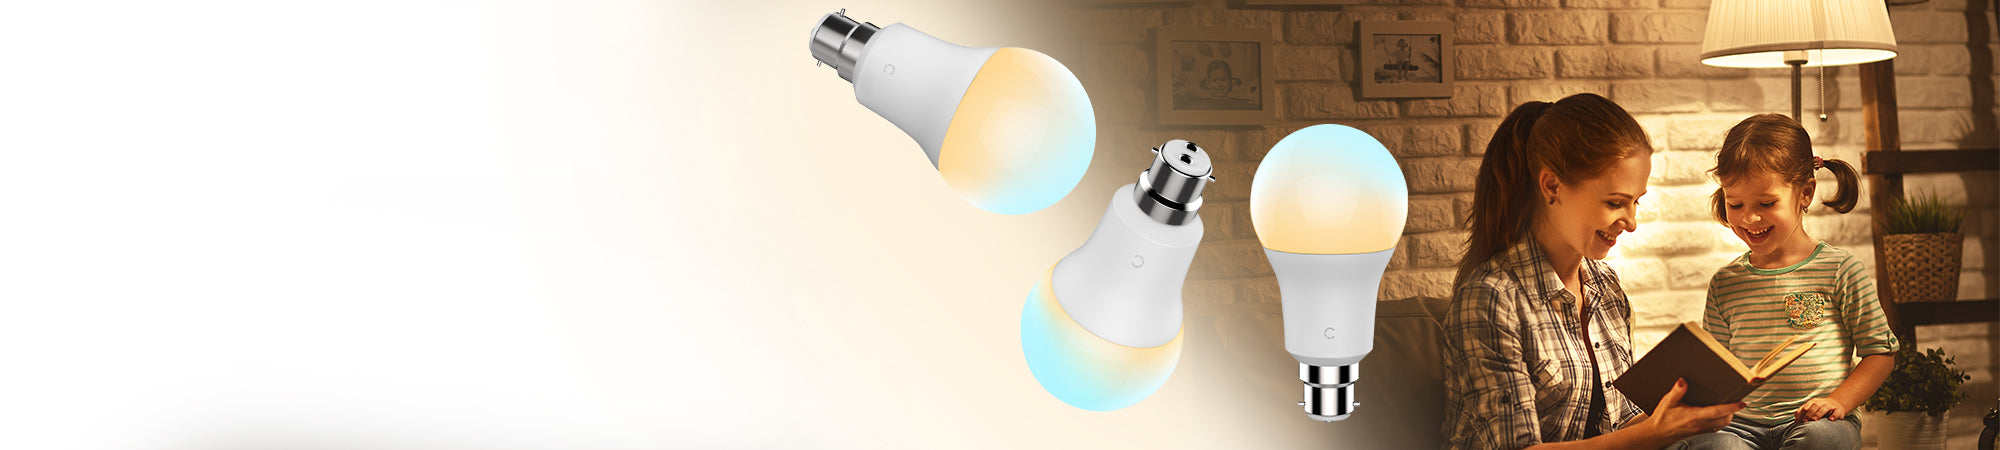 "<style> div.a {   line-height: 120%; } </style> <div class=""a""> <span style=""color: #404040;"">Smart Bulb</span><br><span style=""color: #404040;"">Ambient White</span></div>"